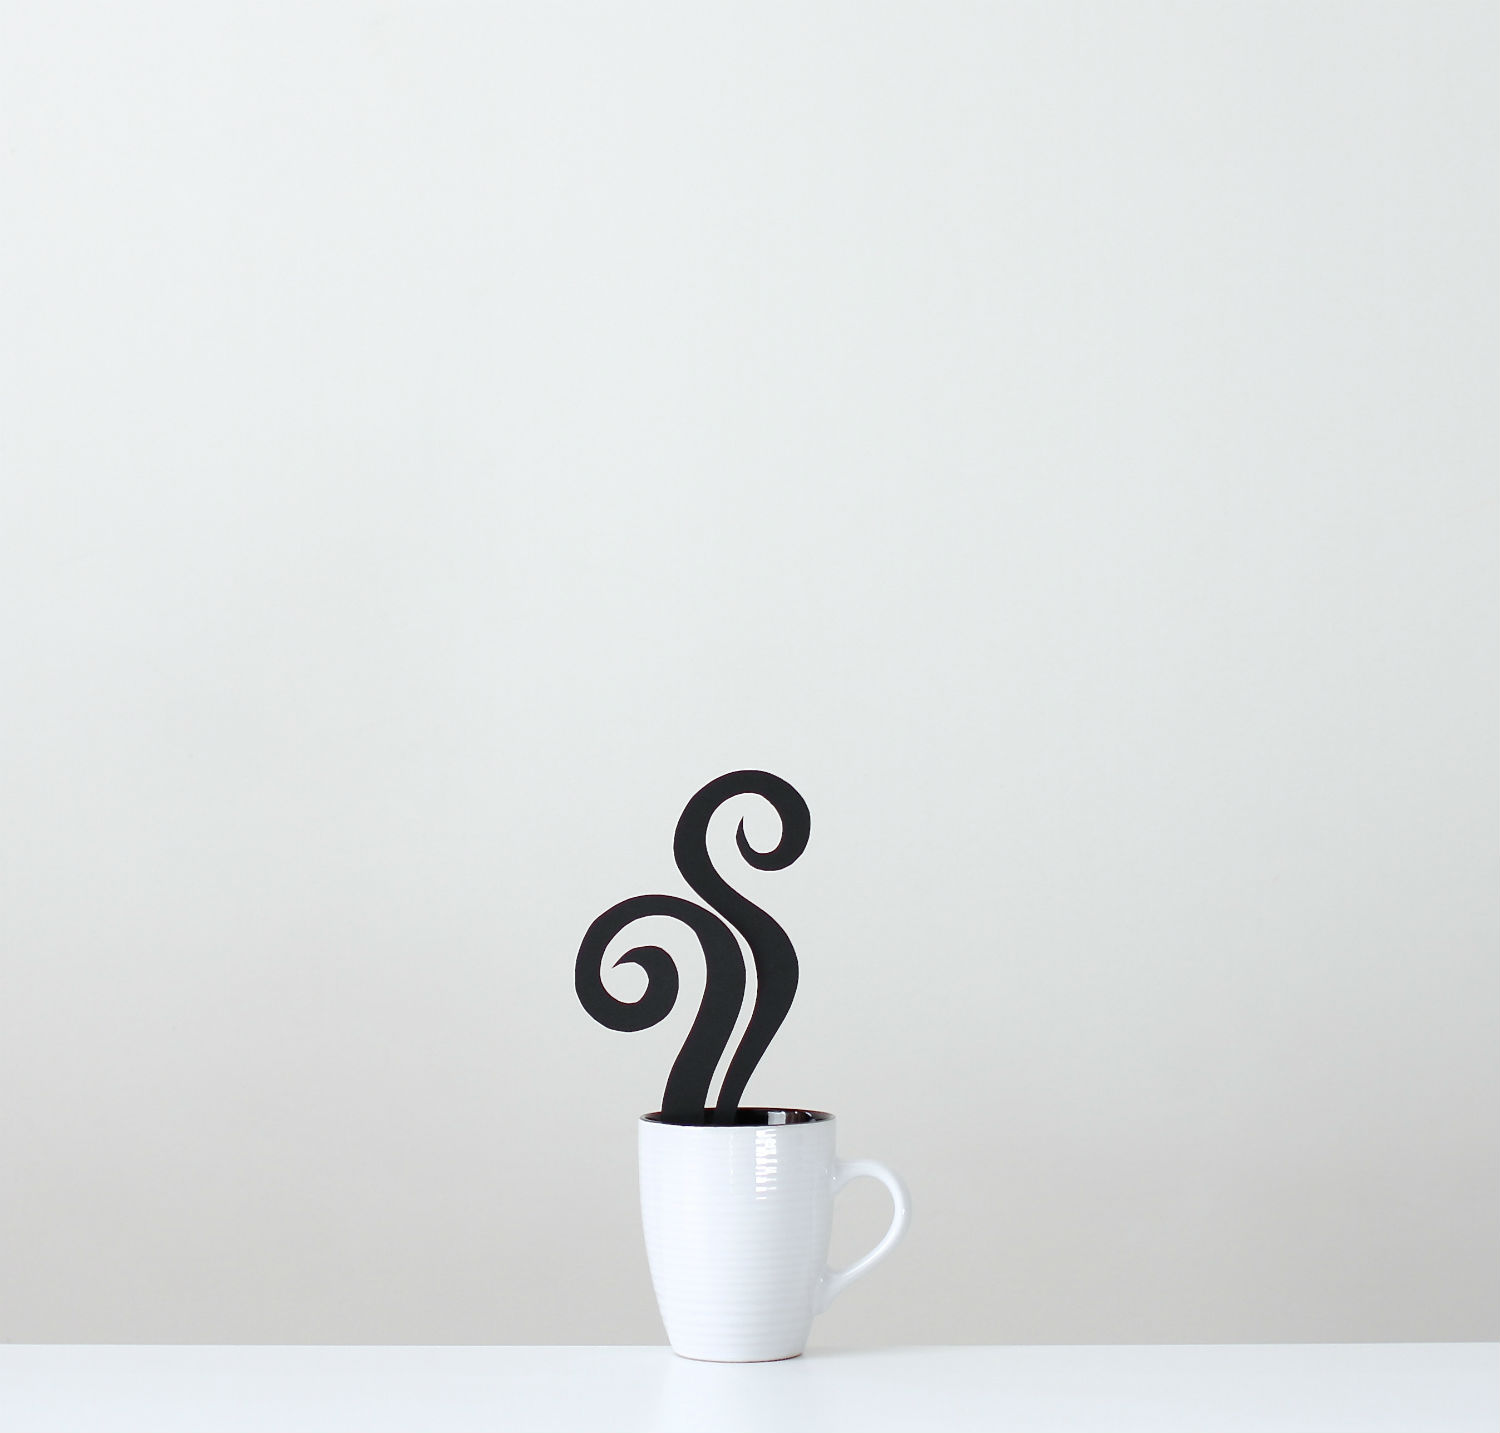 Peechaya Burroughs photography graphic design minimalist objects colour coffee